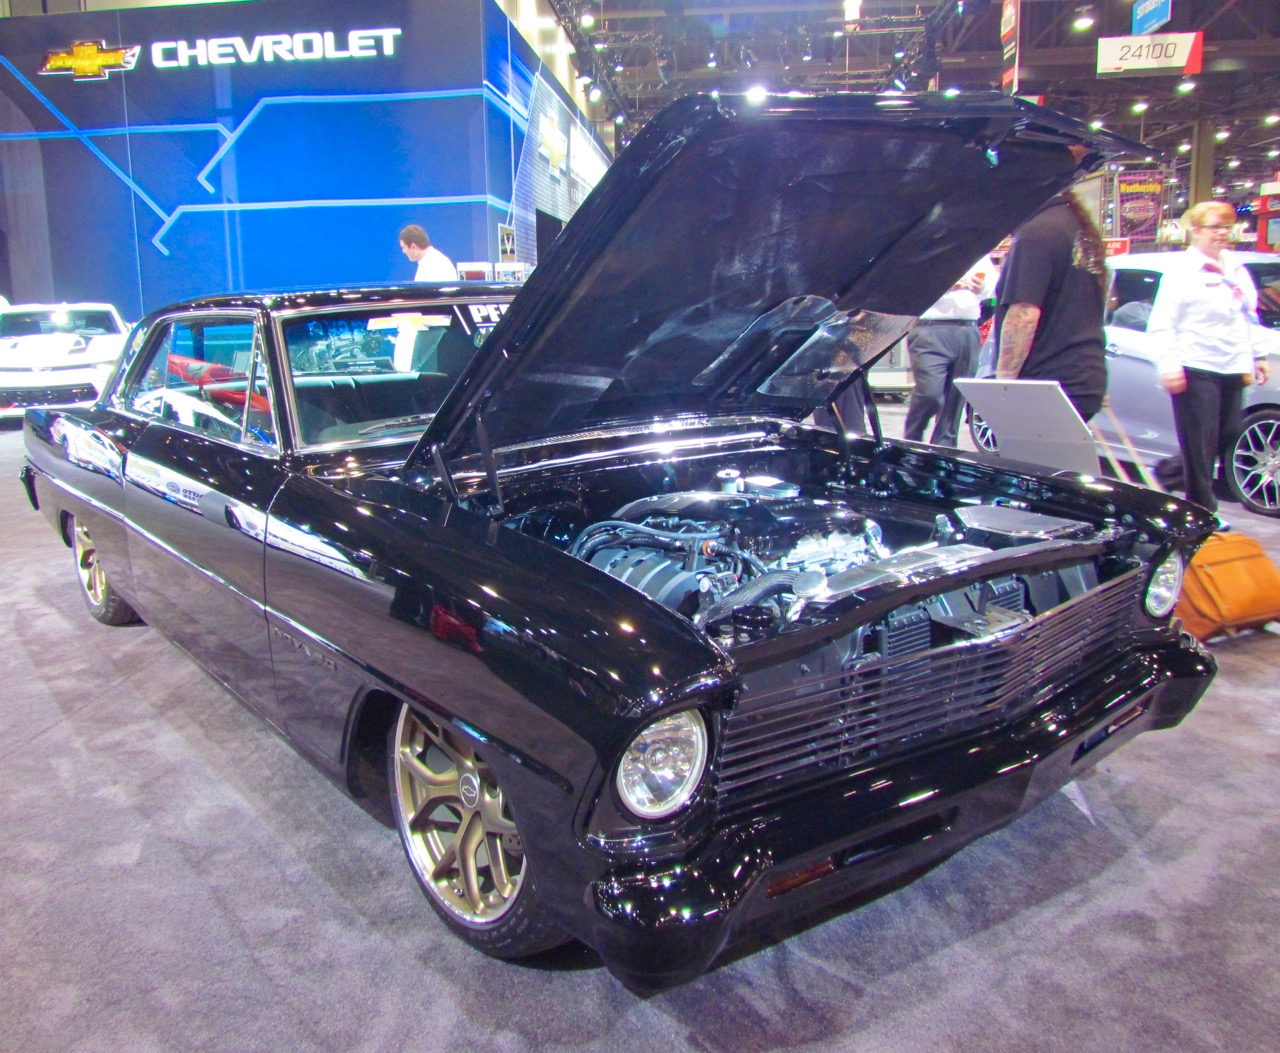 This 1967 Chevrolet Nova SS carries the new 2.0-liter turbocharged four-cylinder engine from the 2016 Camaro | Larry Edsall photos